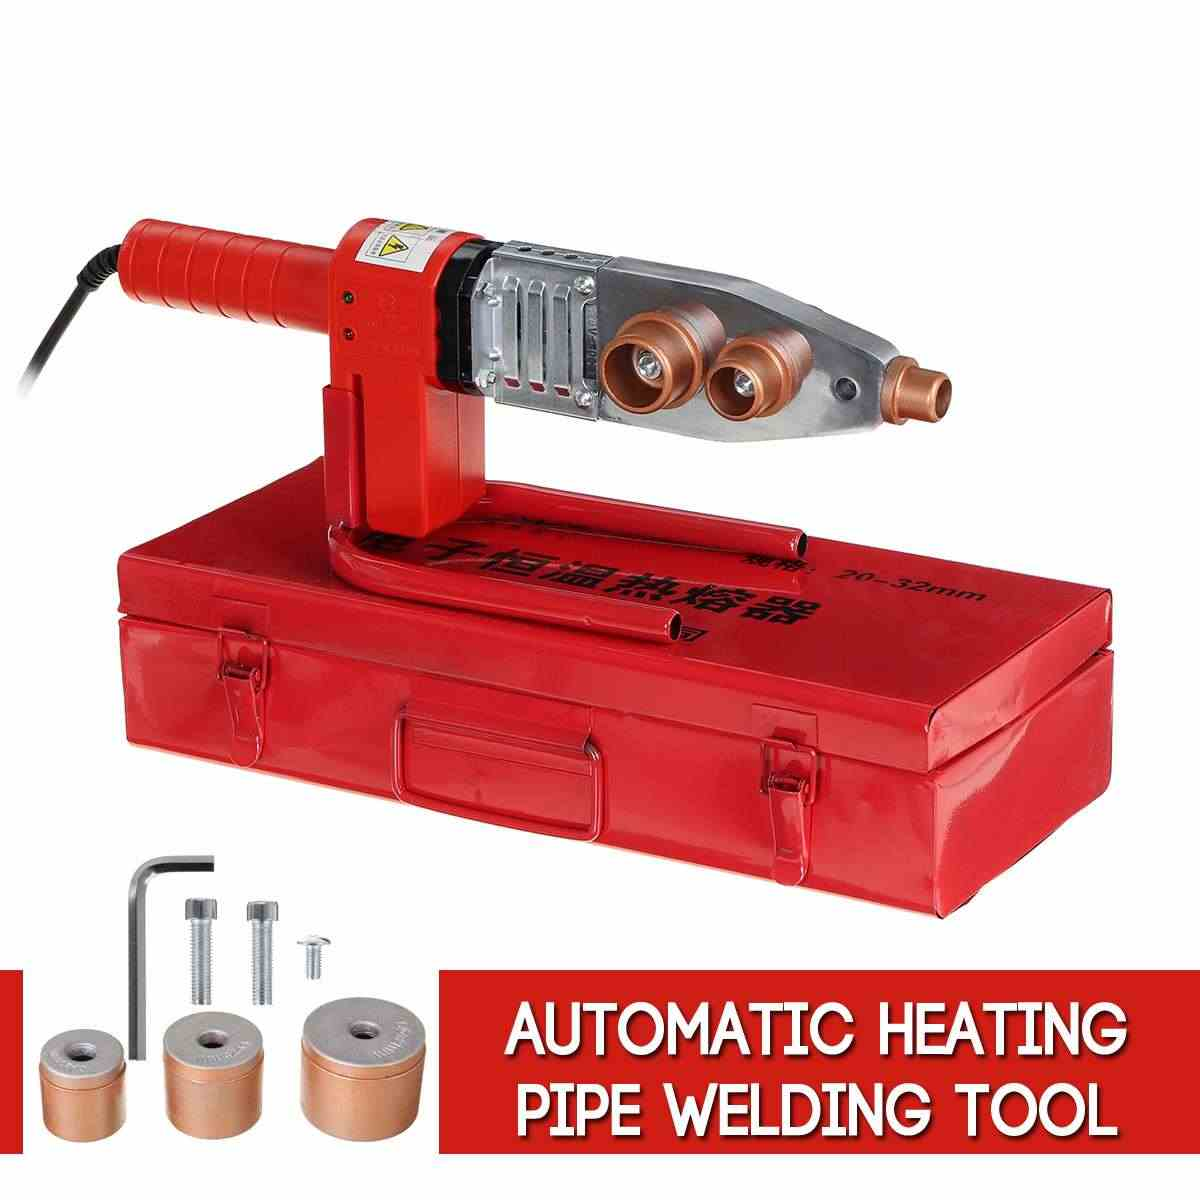 Full Automatic PPR Pipe Welder 220V Digital Temperature Controlled Water Pipe Welding Machine Electric Heating Hot Melt Tools Kit for PP PE PVC Tube,1000W